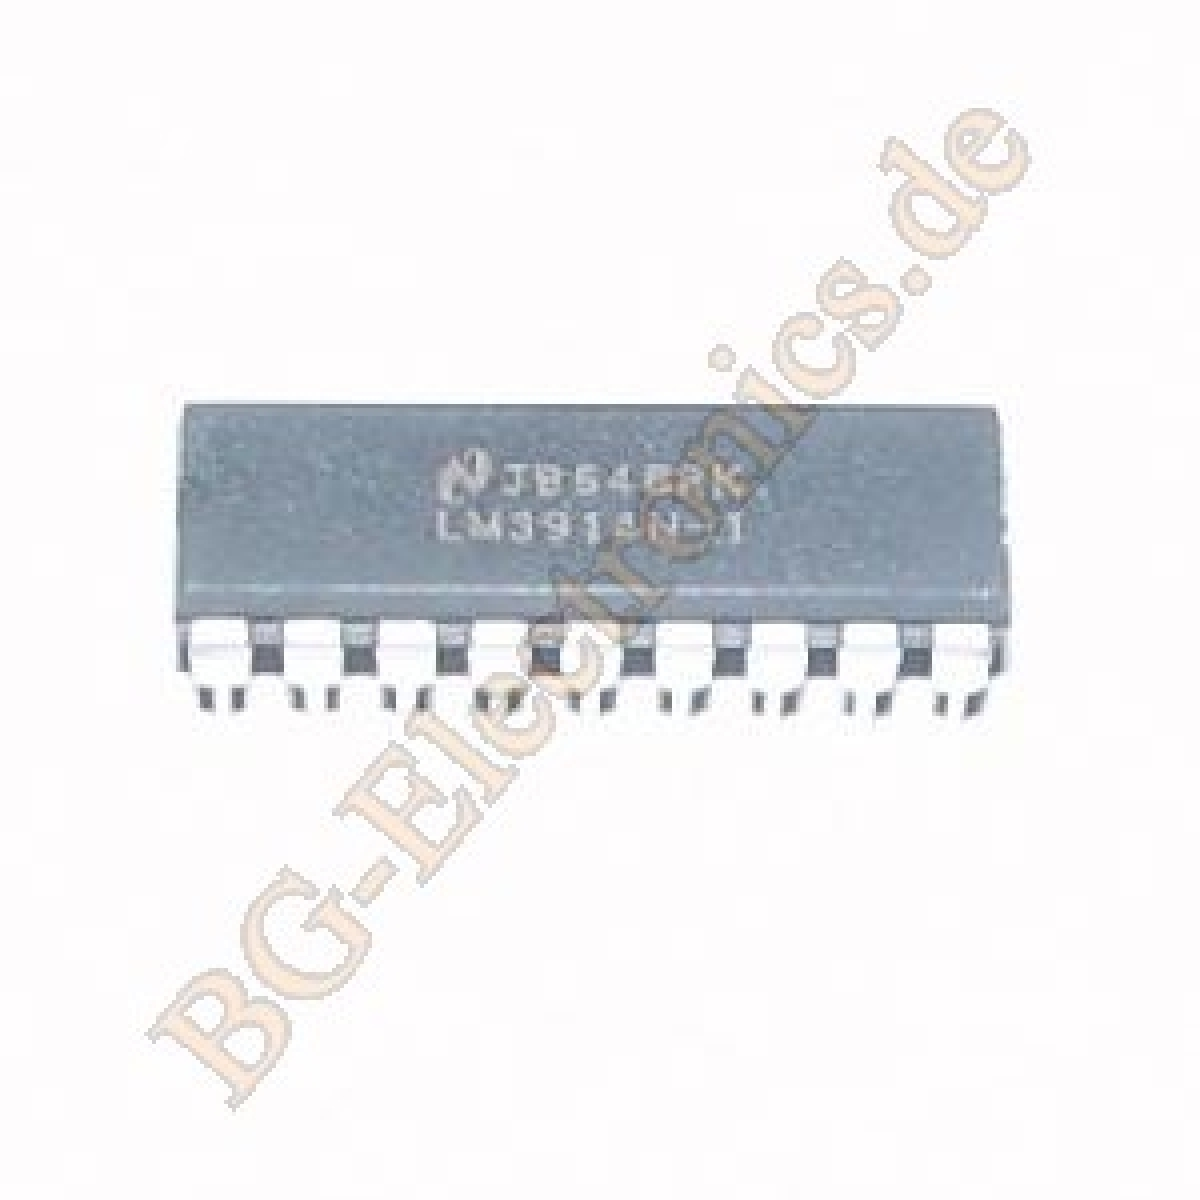 Lm3914n 1 Bg Electronics Lm3914 Basic Circuit For